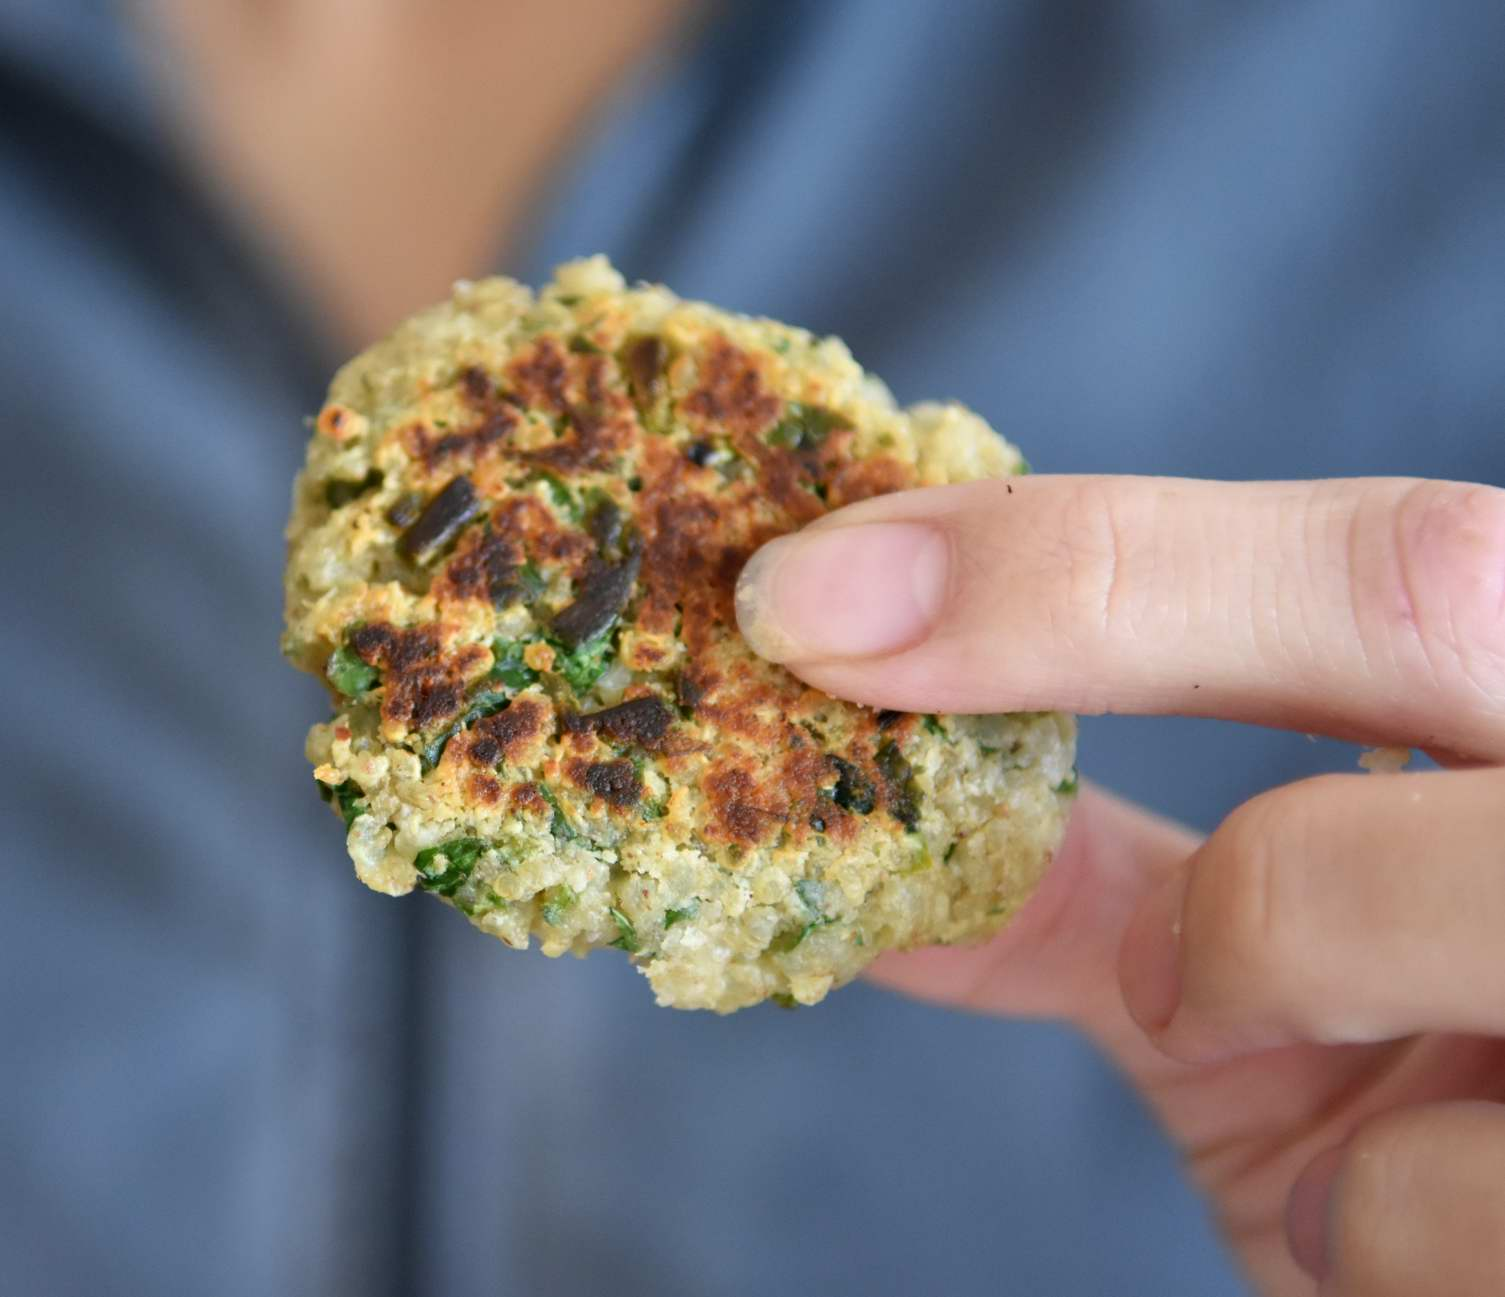 These Are Perfect For That Quinoa Leftovers From Yesterday You Were'nt Sure  What To Do With, Or For A Fresh New Cooked Quinoa Either Way They Are Easy  To